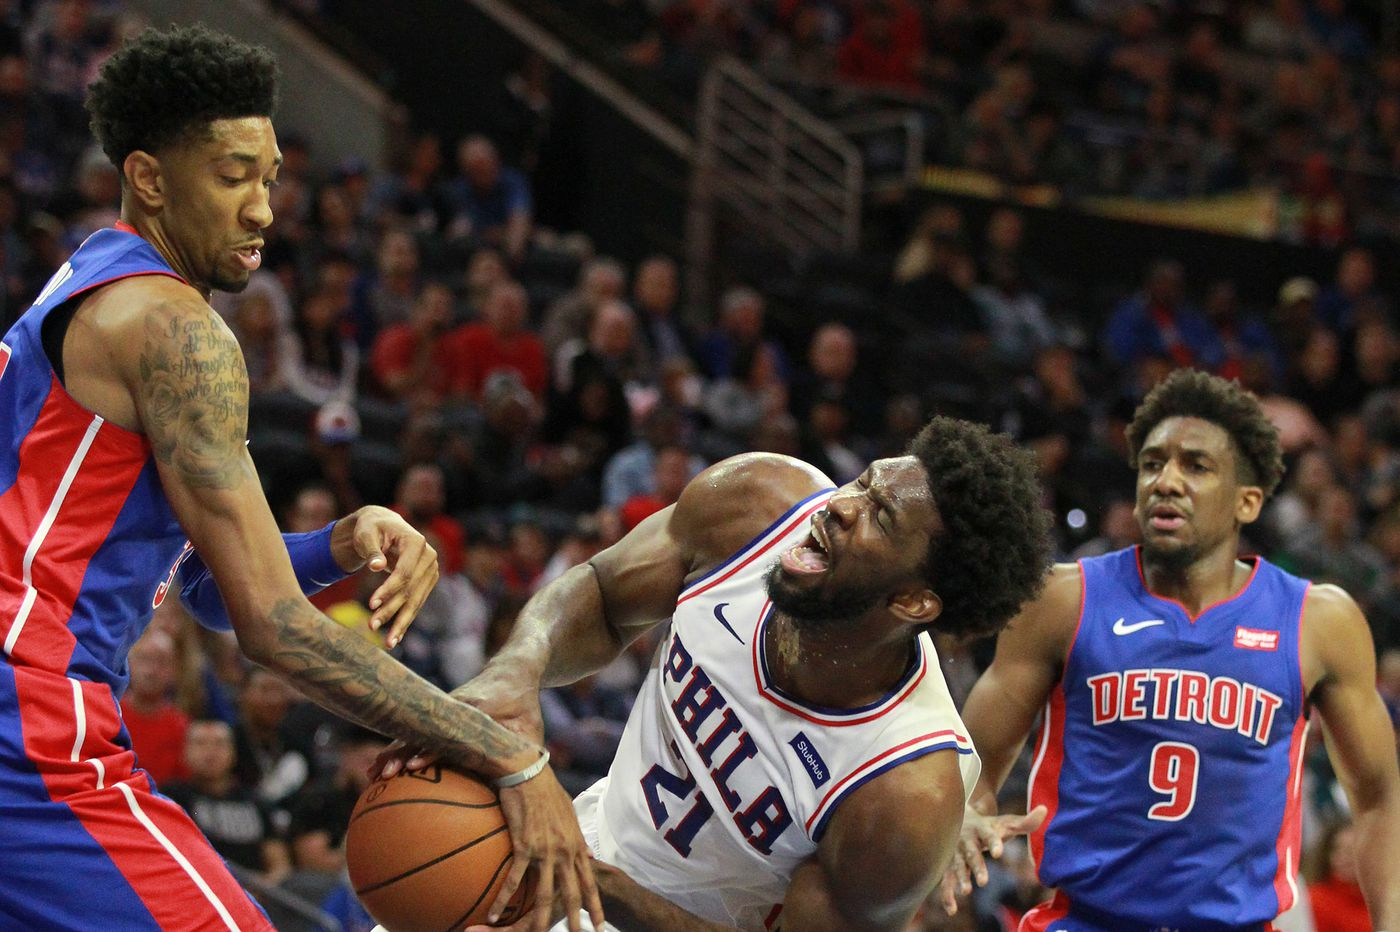 Instant Analysis: Is the best of Joel Embiid yet to come? That, plus three other takeaways from Sixers-Pistons